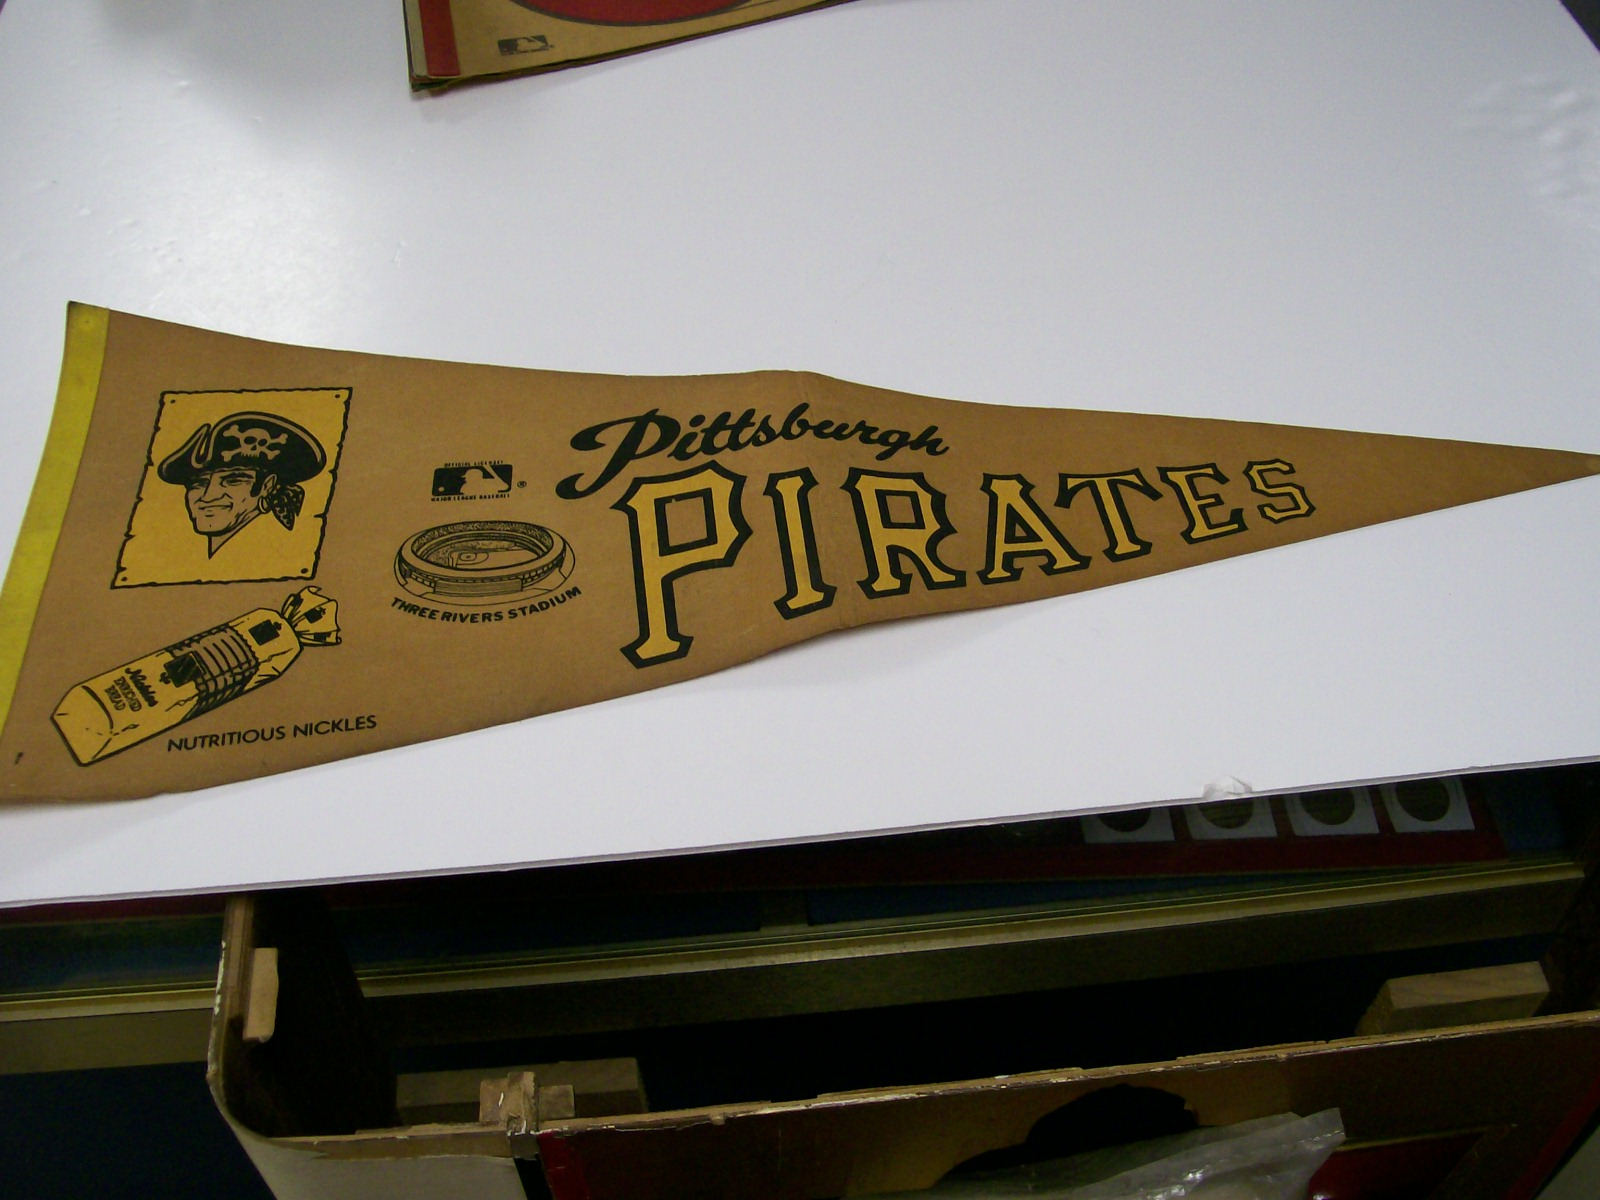 1970 Pittsburgh Pirates Official Pennent/Rare Advertising Nickle